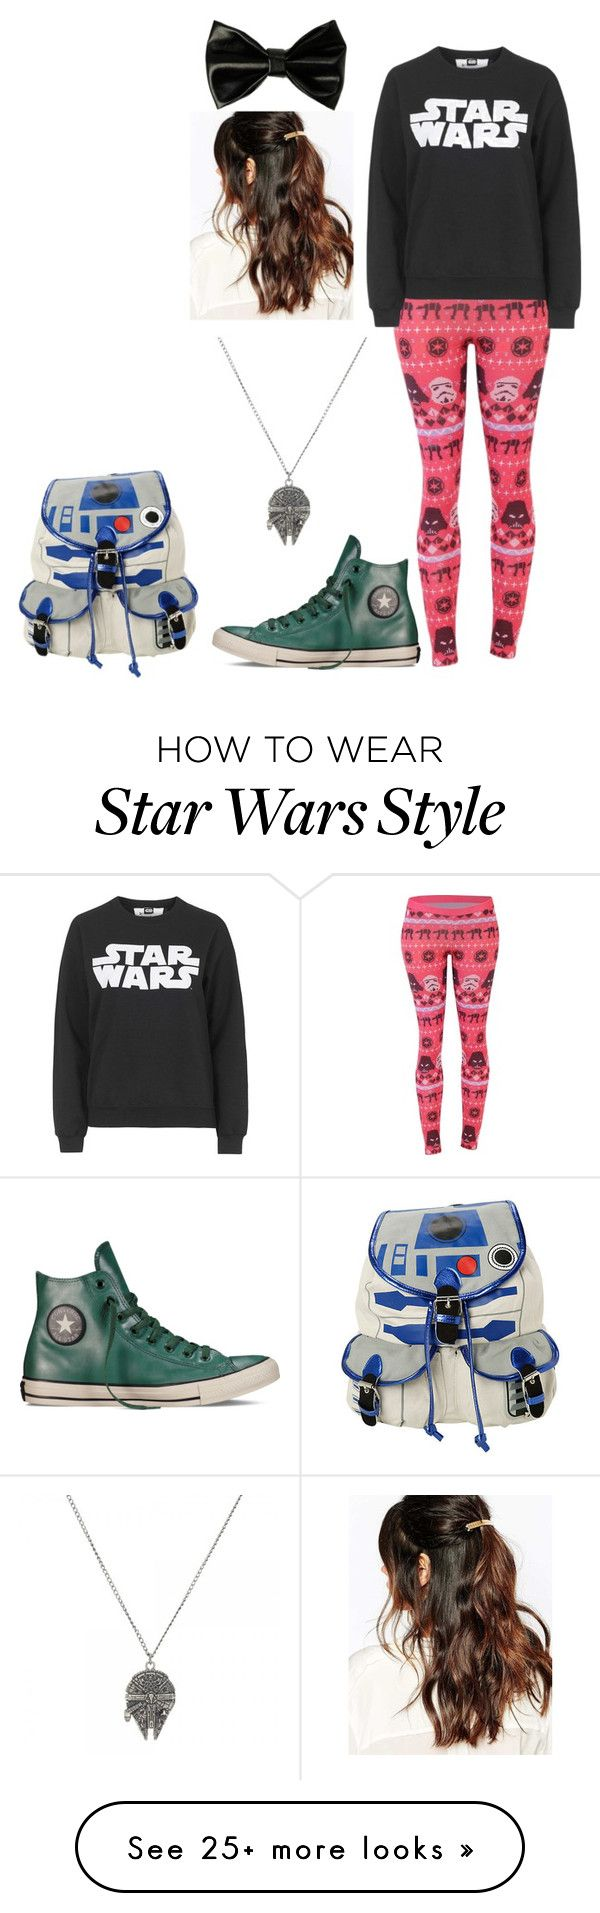 """""""Star Wars Fan"""" by madeinchina03 on Polyvore featuring R2, Tee and Cake, Converse and Suzywan DELUXE"""